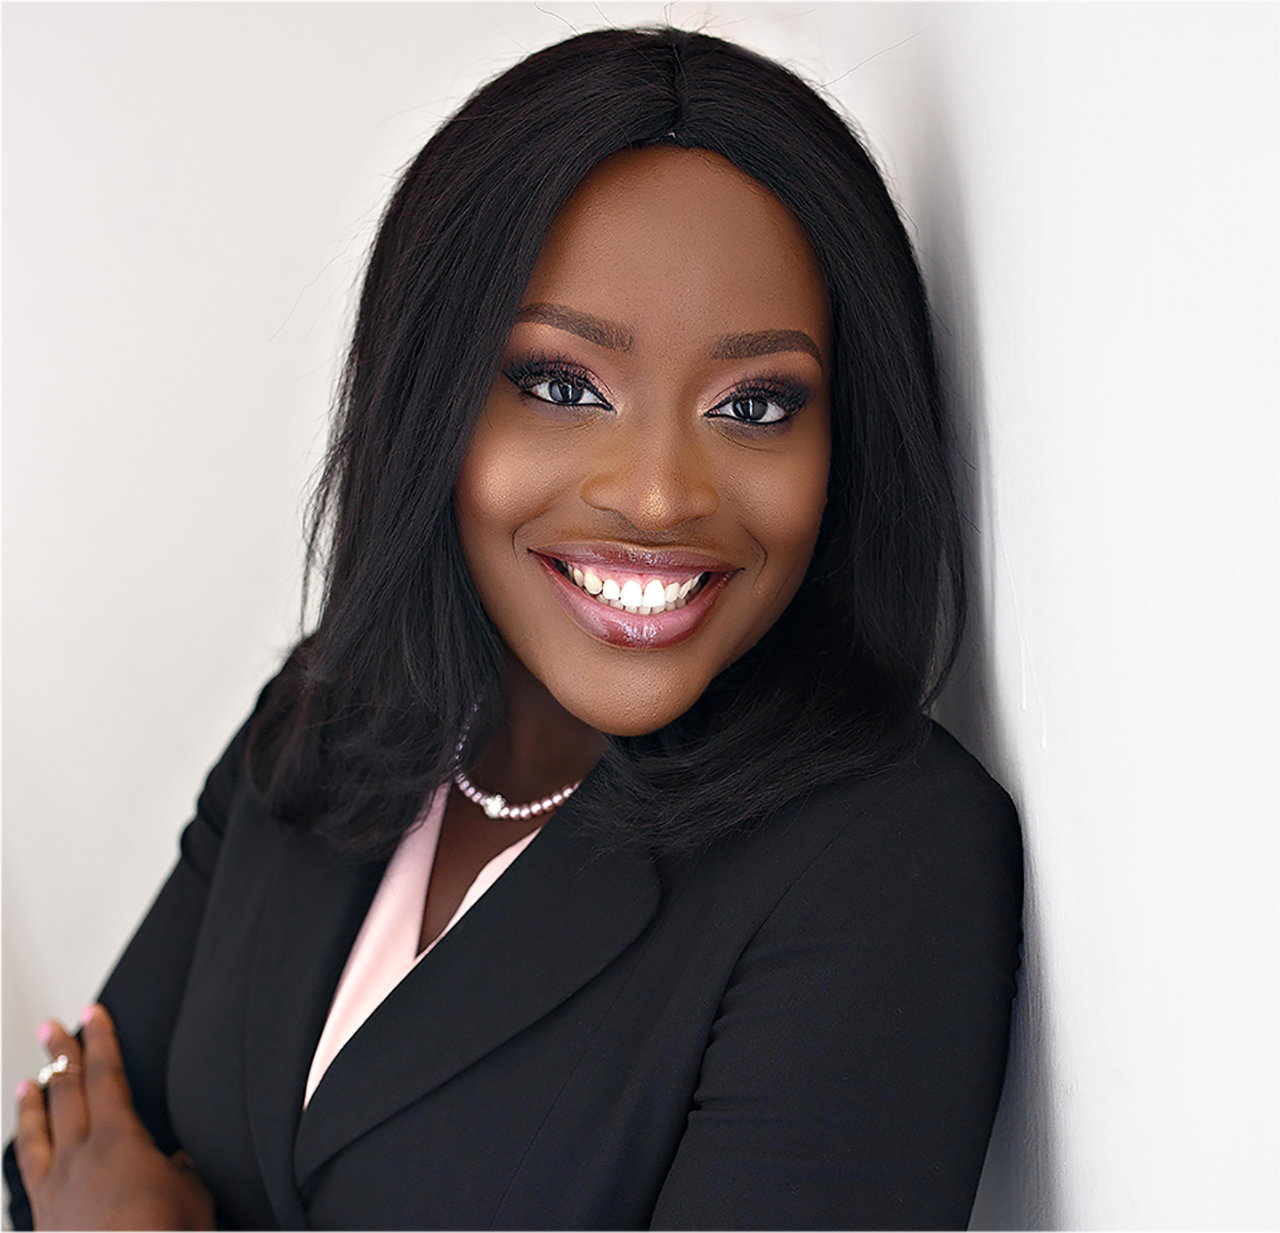 Ngozi Ukweni selected to attend Forbes summit - News - Illinois State University News